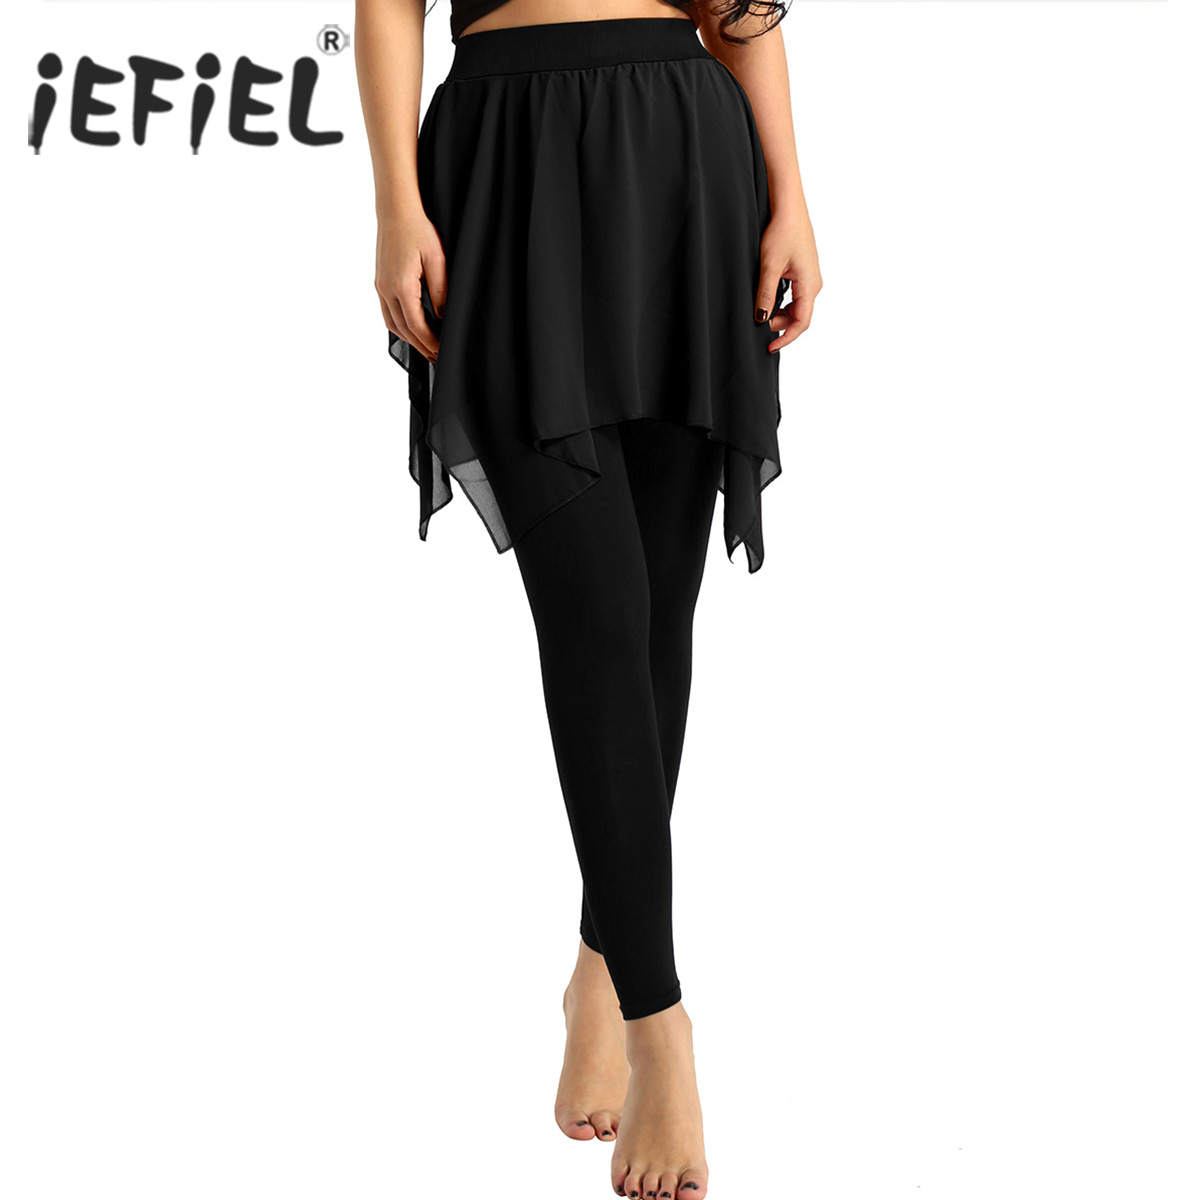 iEFiEL Womens Flowy Cropped Length Footless Leggings with Skirt Latin Pantskirt Adult Costume Gymnastics Leotard Dancewear